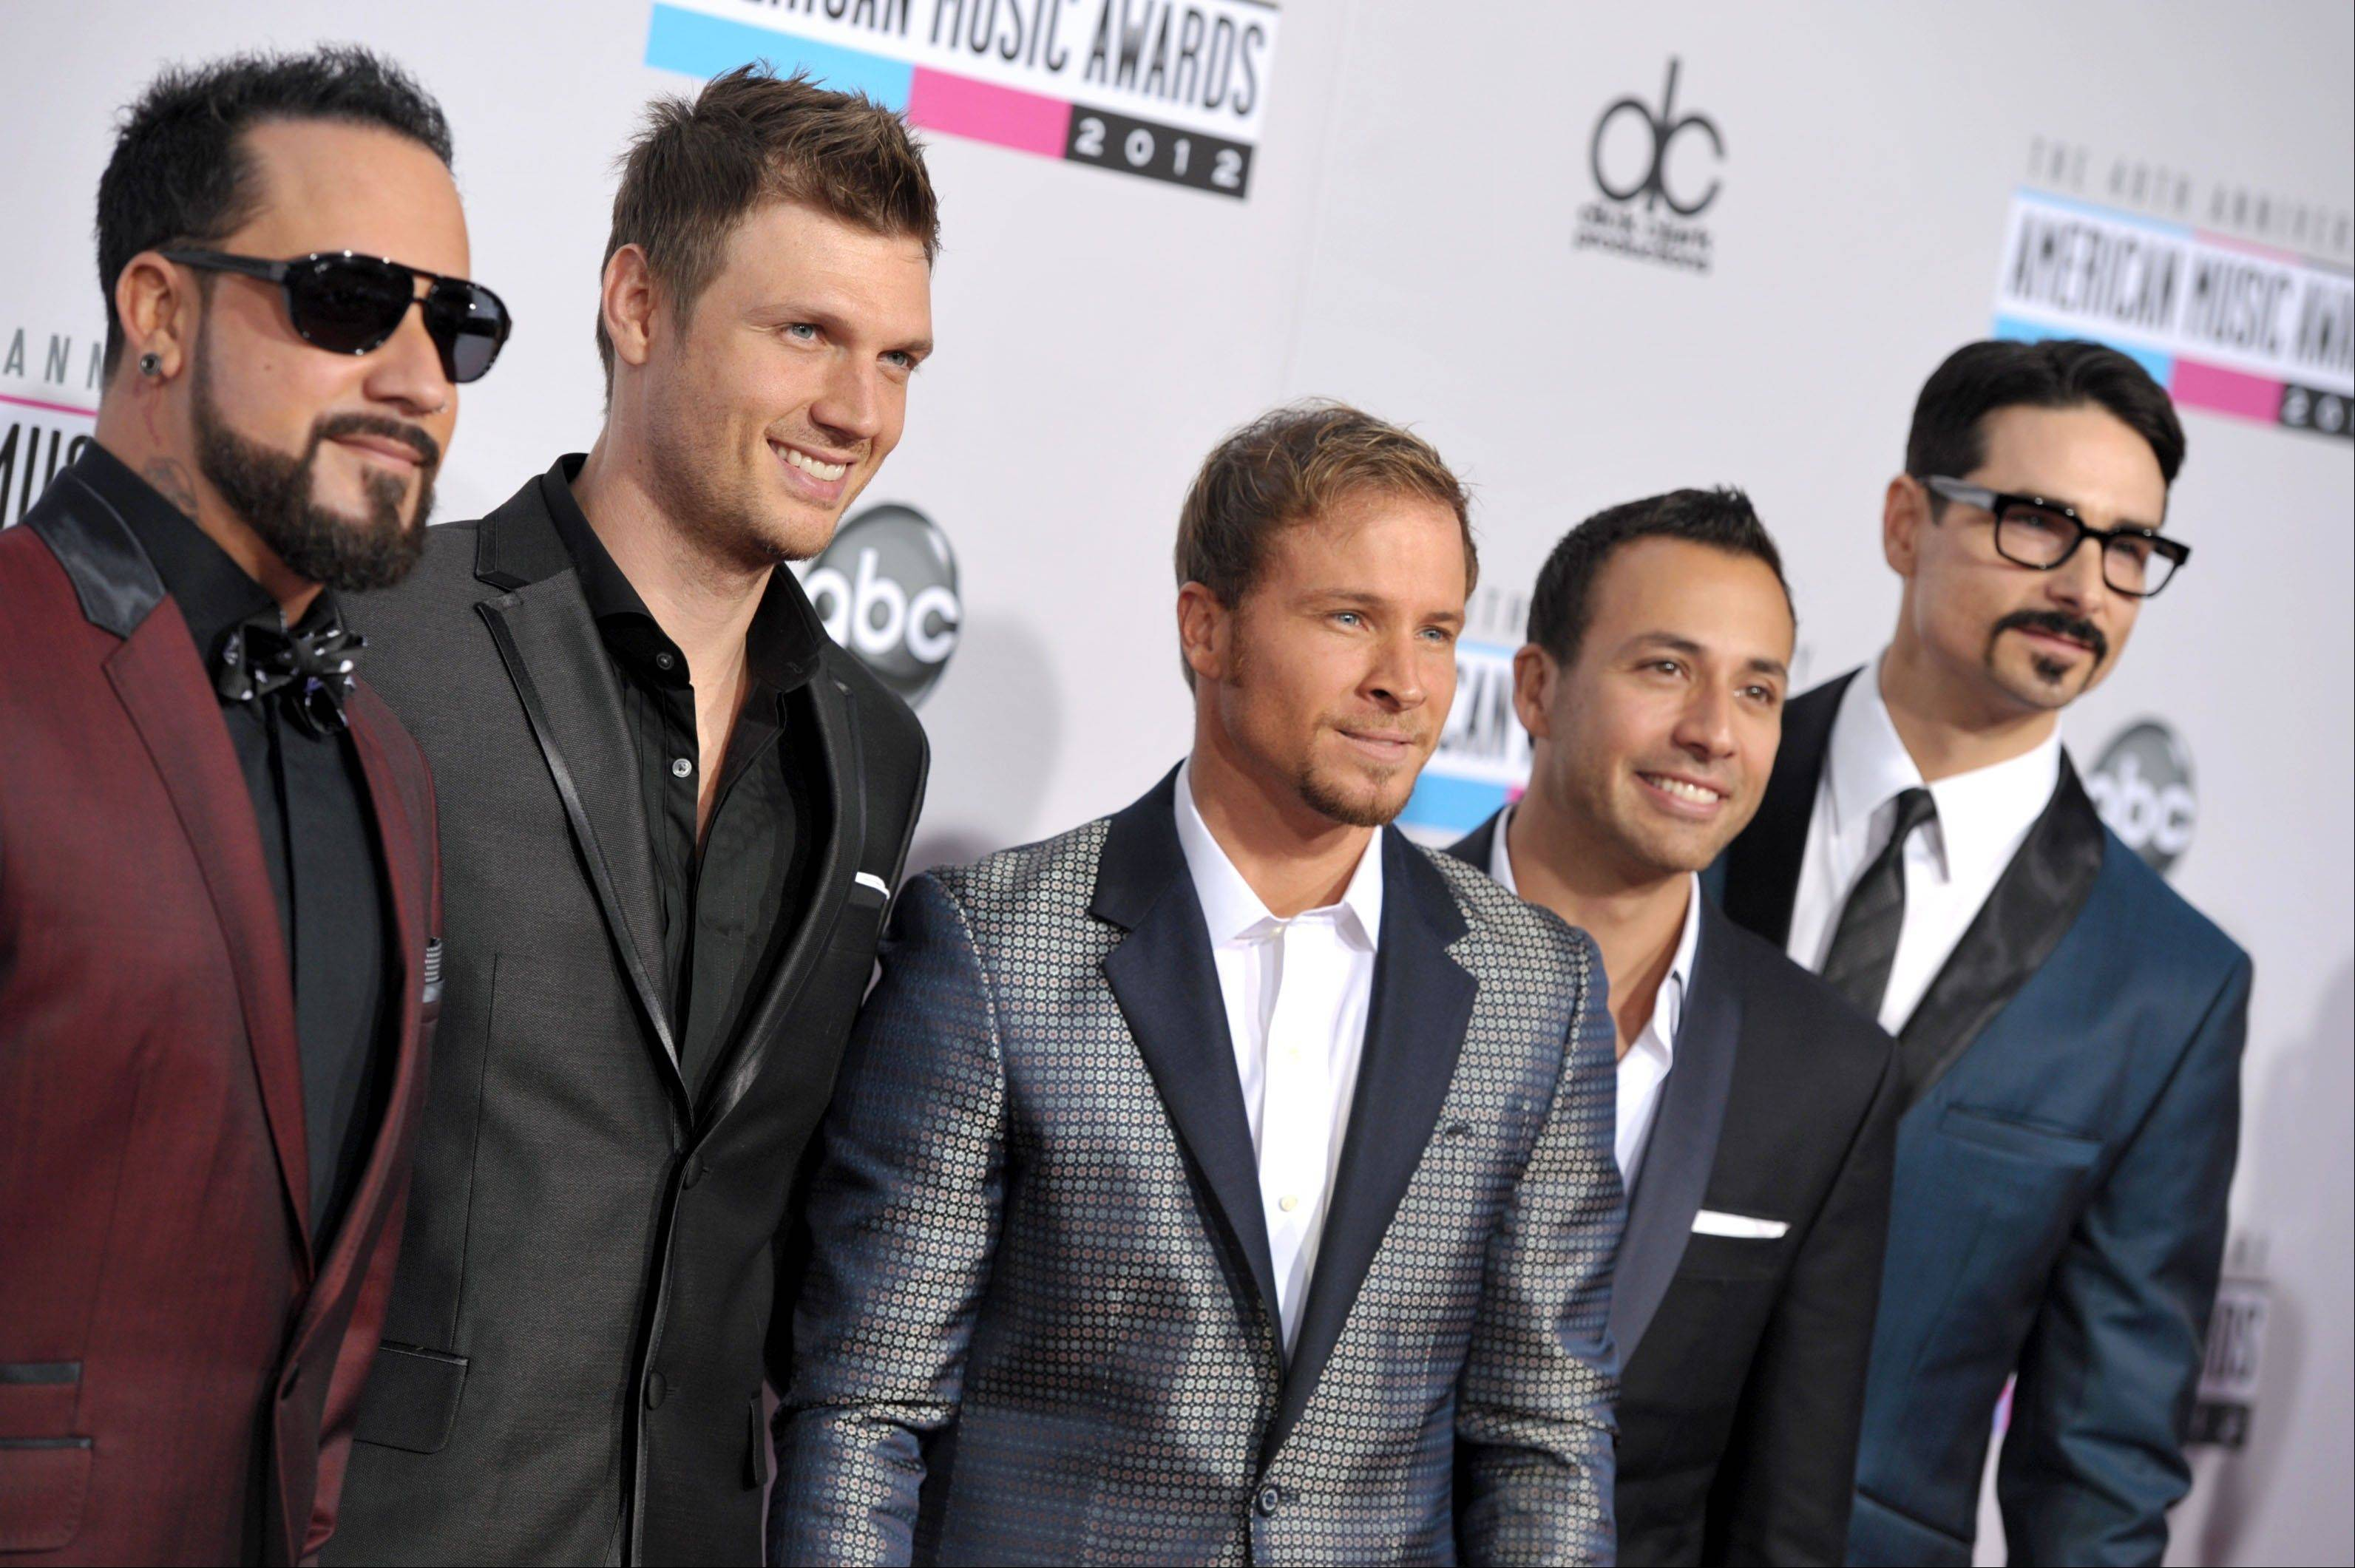 The Backstreet Boys appear on the bill of Miracle on State Street at the Chicago Theatre on Friday, Dec. 6.